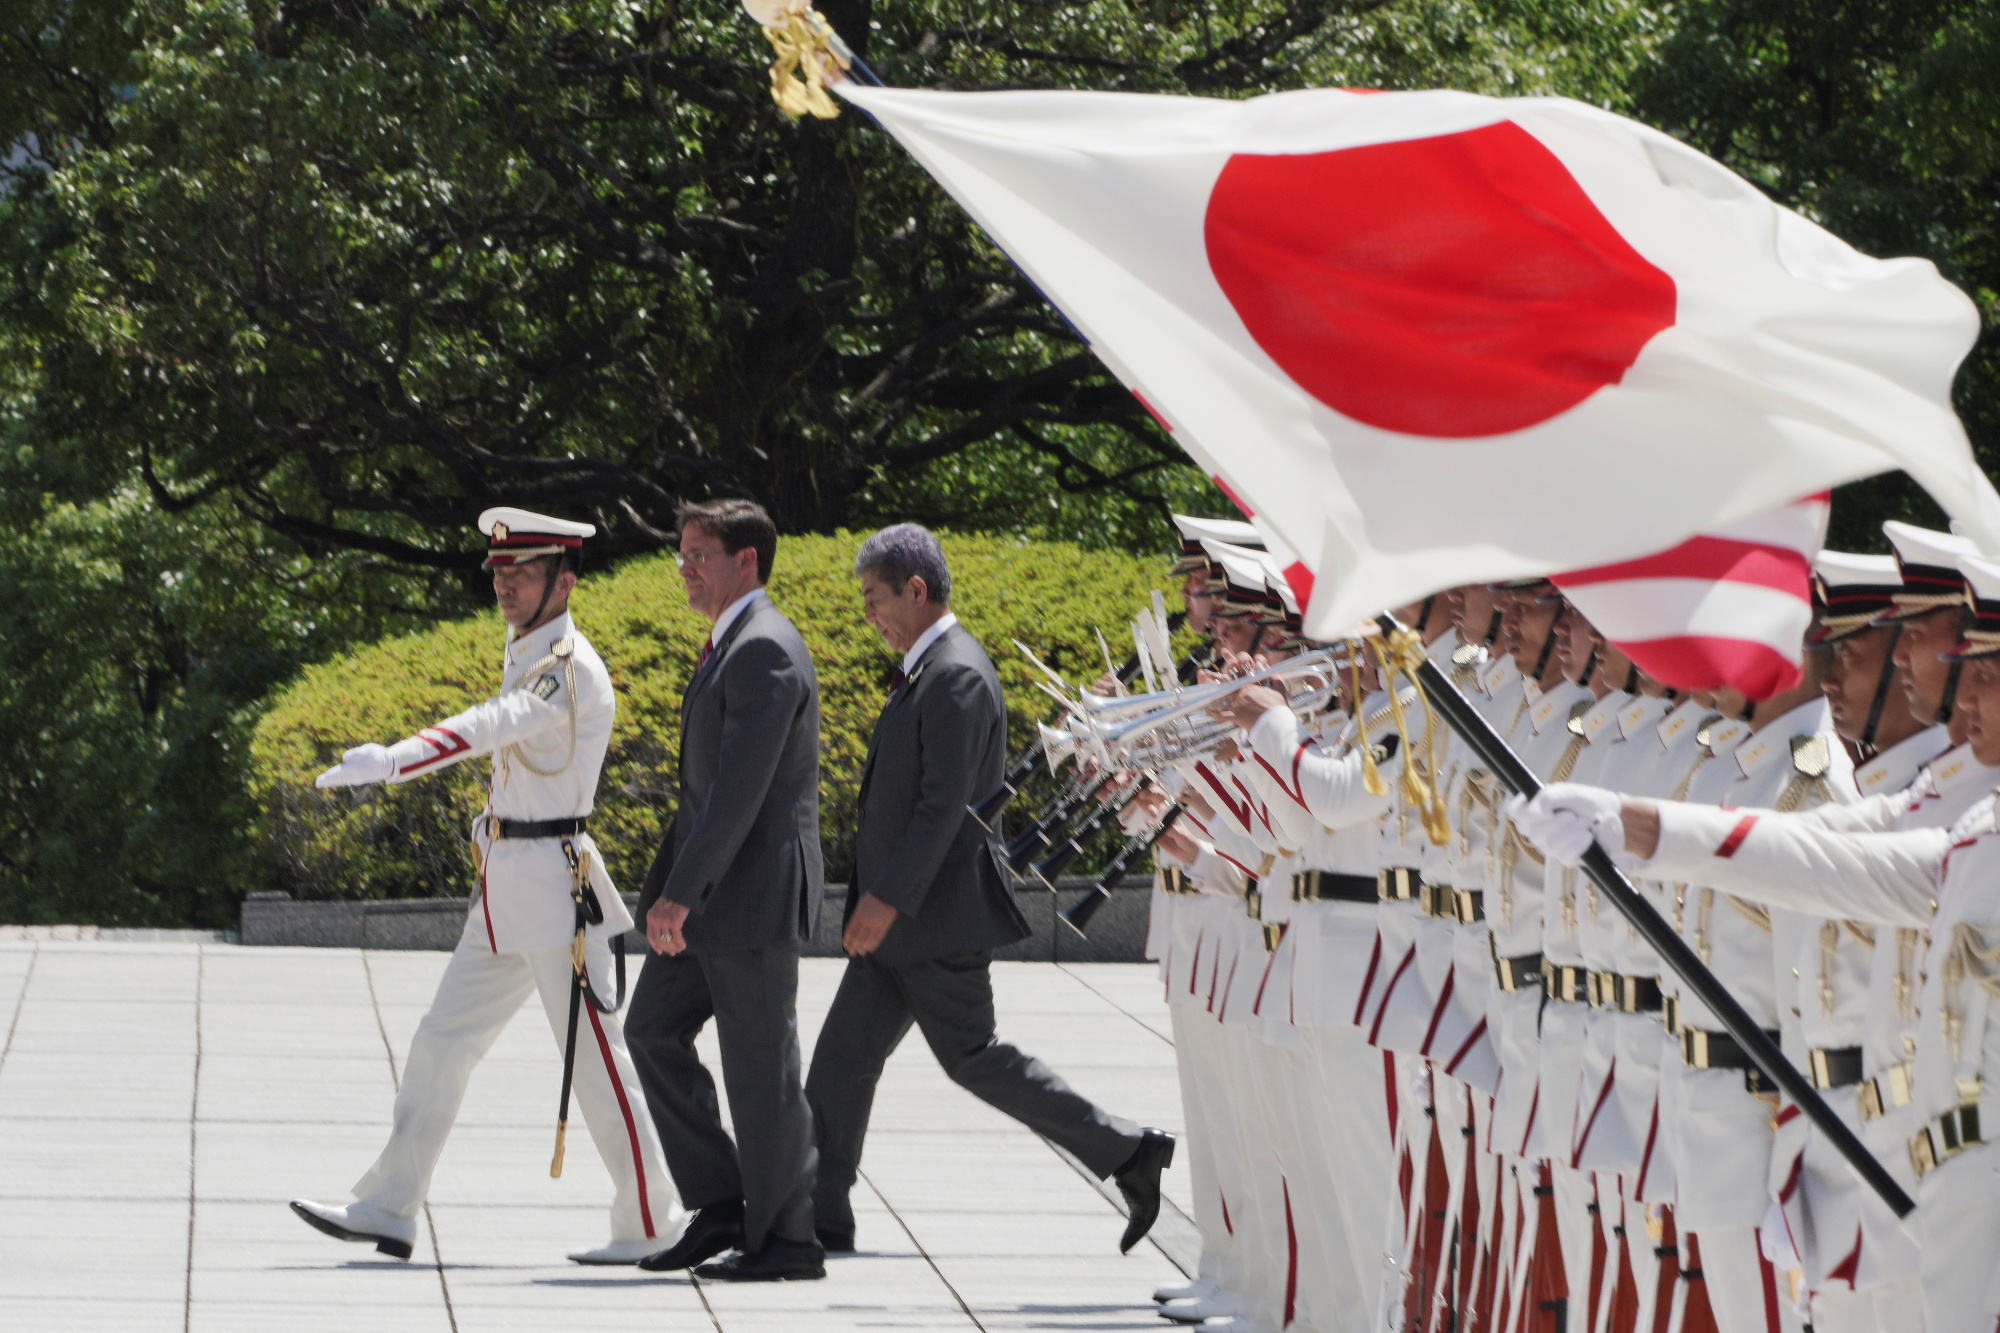 U.S. Secretary of Defense Mark Esper and then-Japanese Defense Minister Takeshi Iwaya inspect an honor guard ahead of their meeting at the Defense Ministry in Tokyo on Aug. 7. | REUTERS